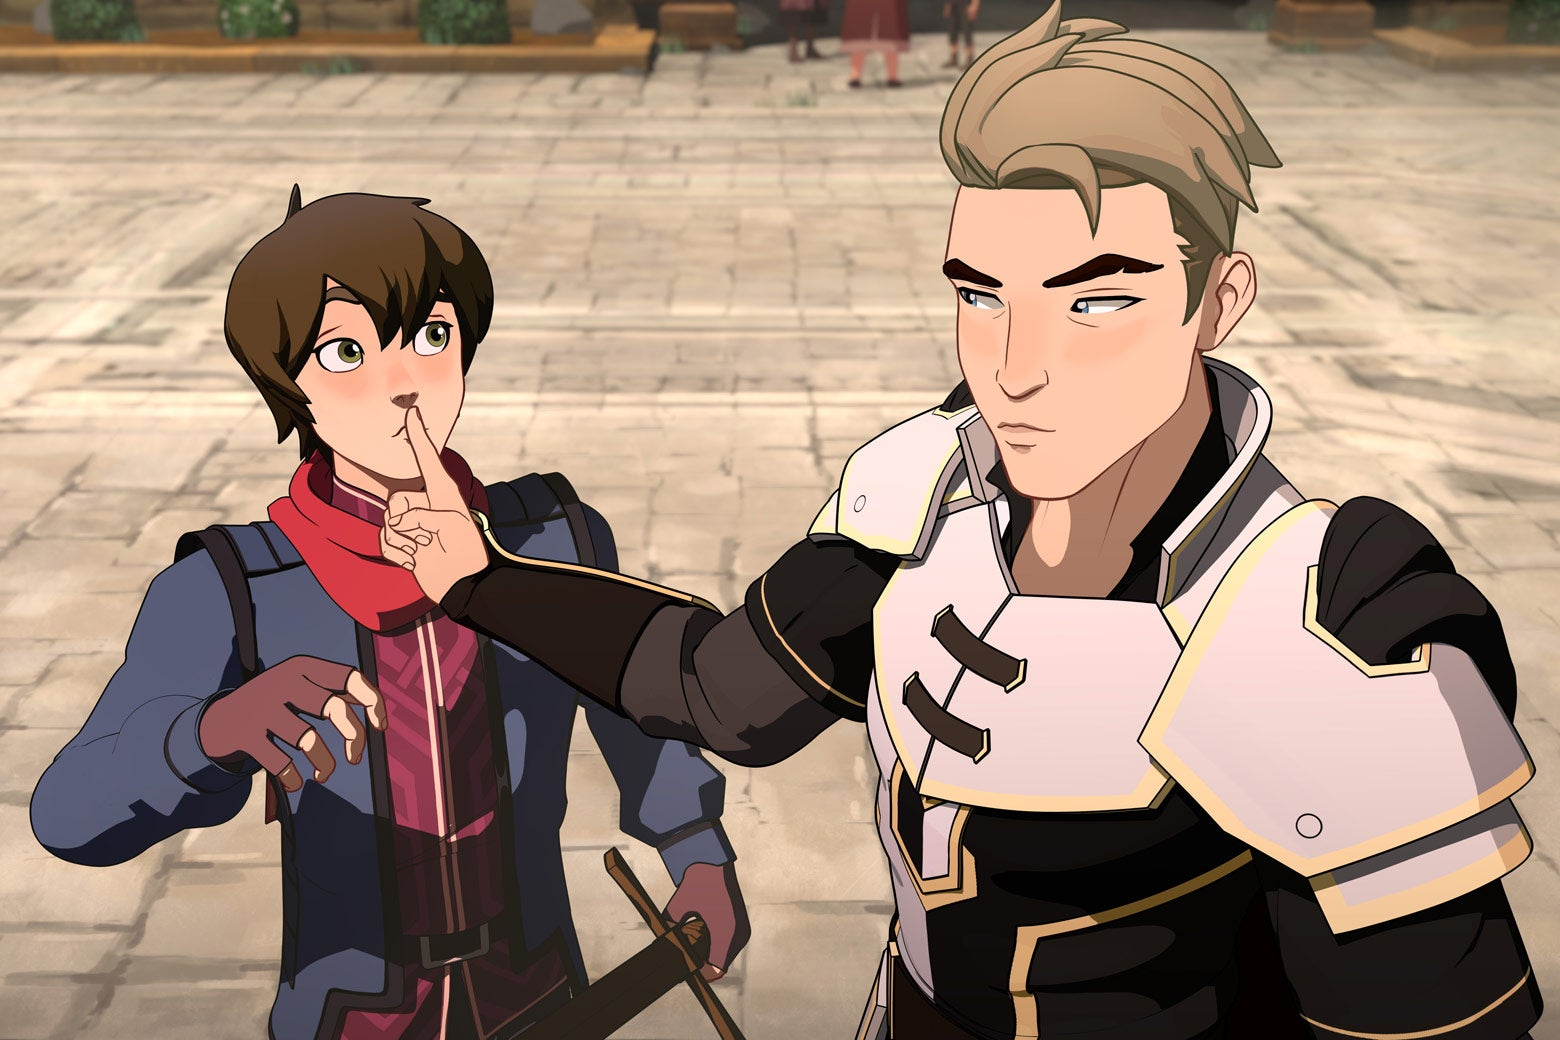 In a frame from the animated show The Dragon Prince, Soren holds a finger to Callum's lips to shush him. Callum's face is shocked, probably, and Soren looks serious.